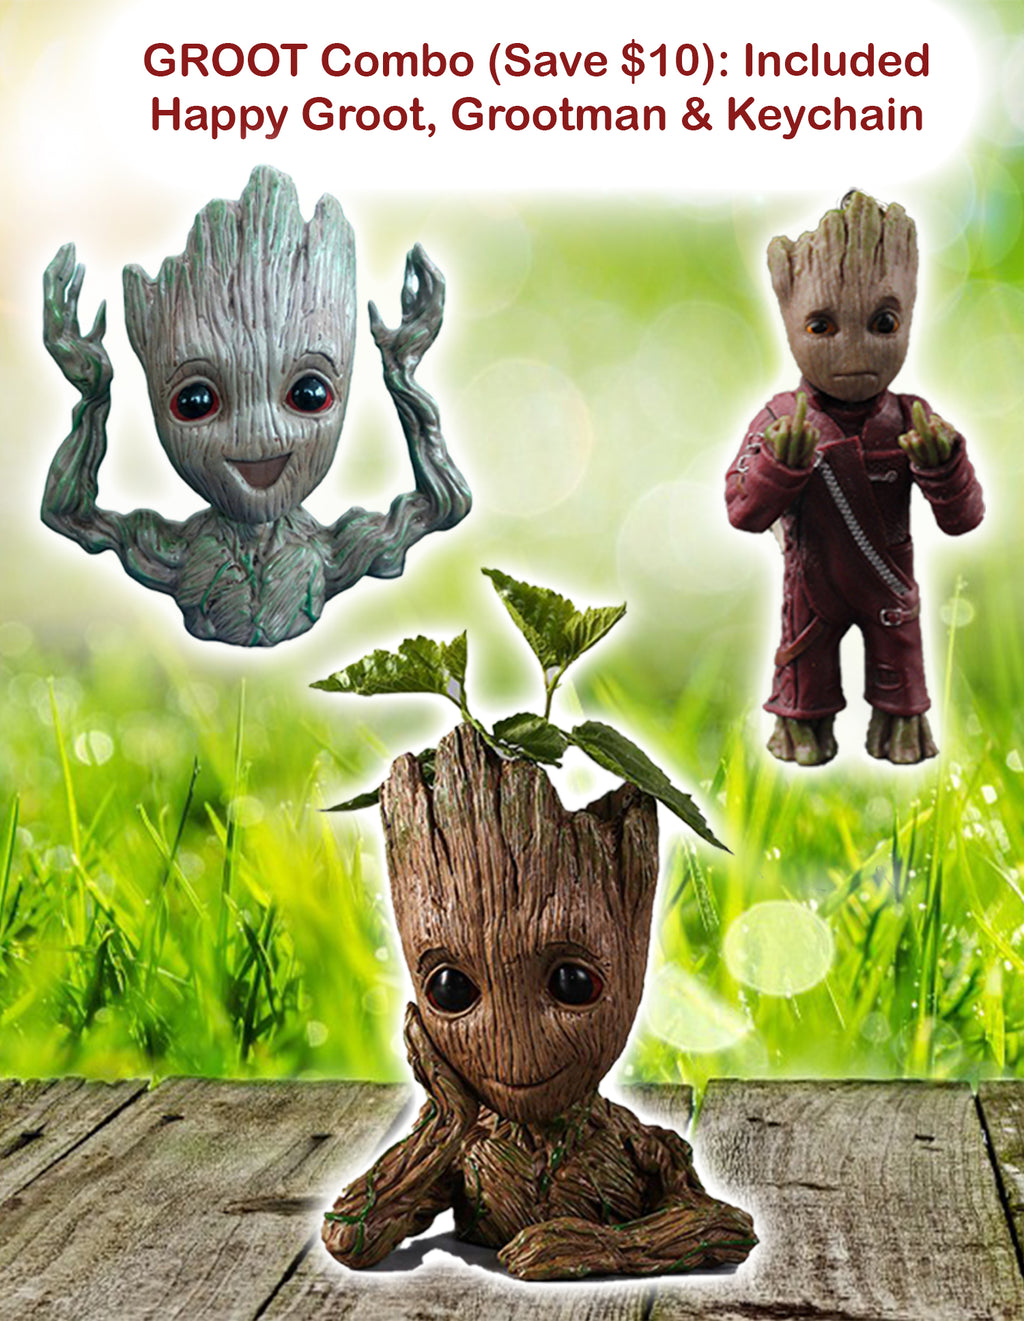 The Family Groot